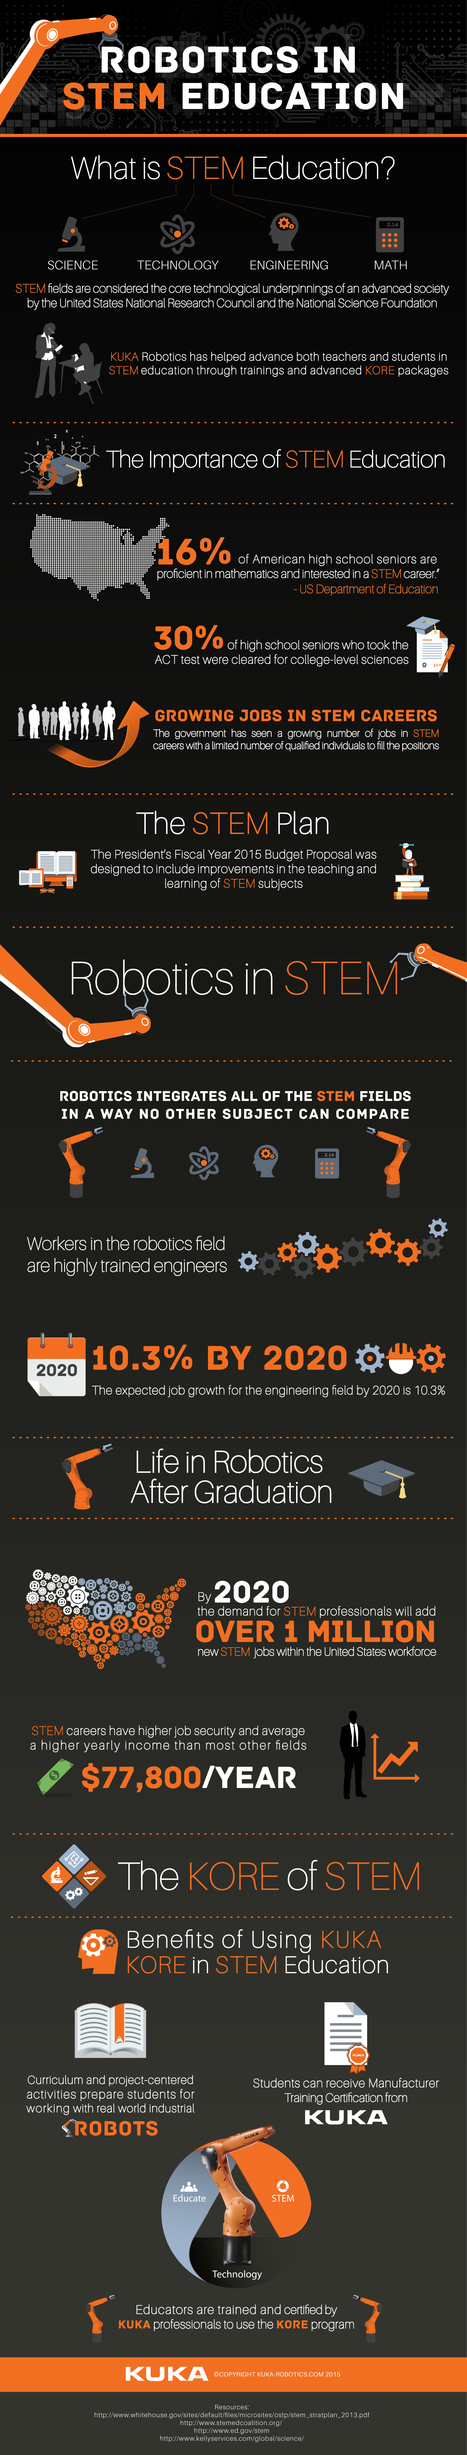 The Growth of Robotics in STEM Education - KUKA Robotics | STEM Education models and innovations with Gaming | Scoop.it